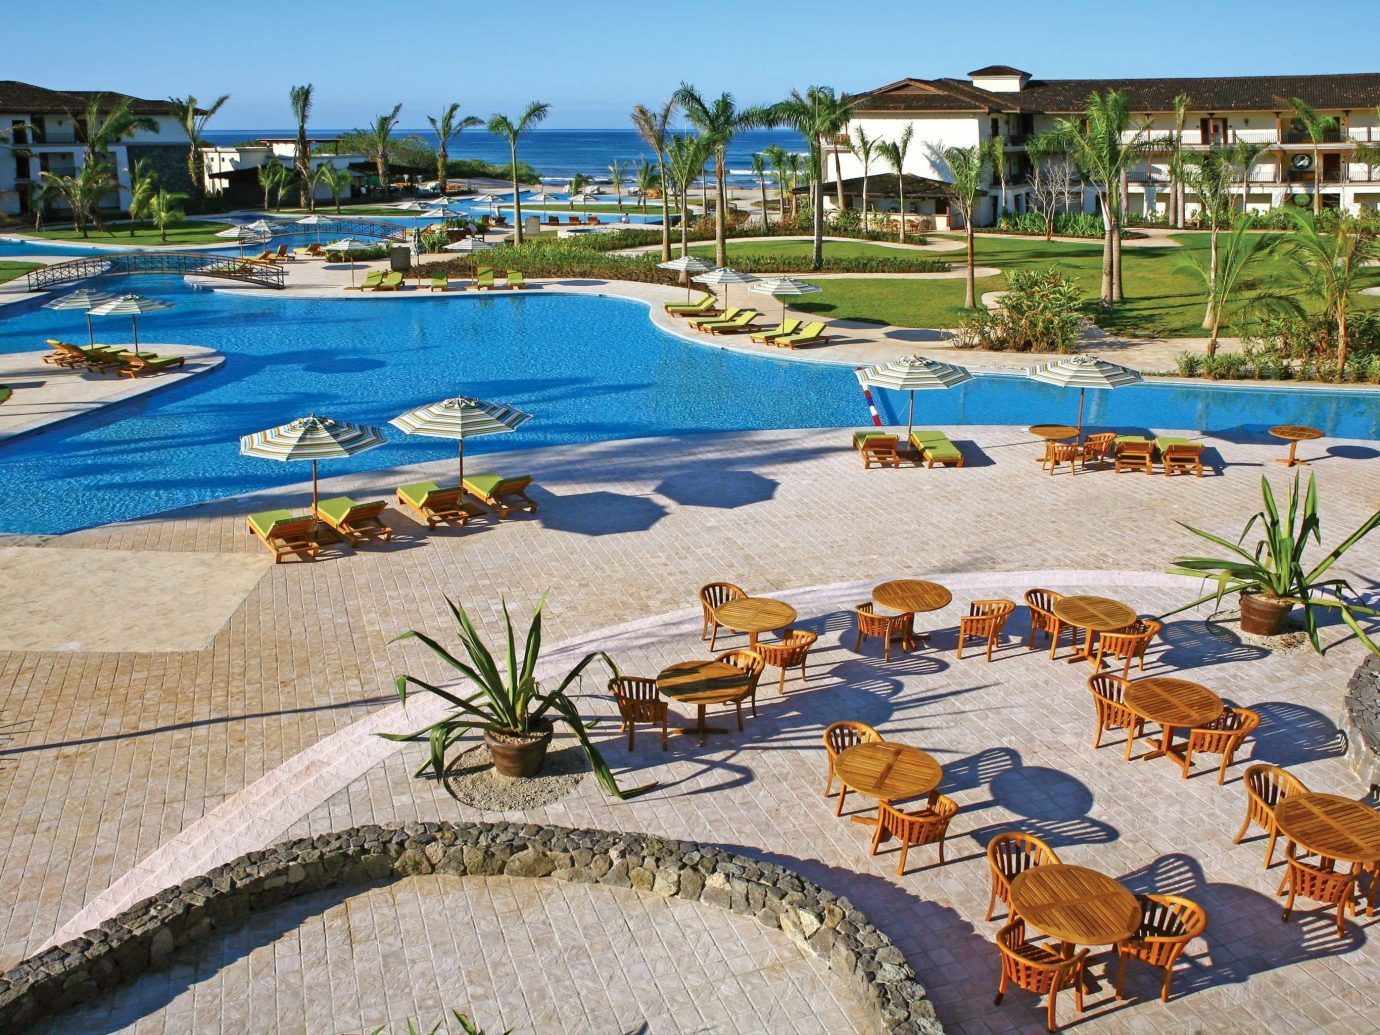 Aerial view of the pool at JW Marriott Guanacaste in Costa Rica